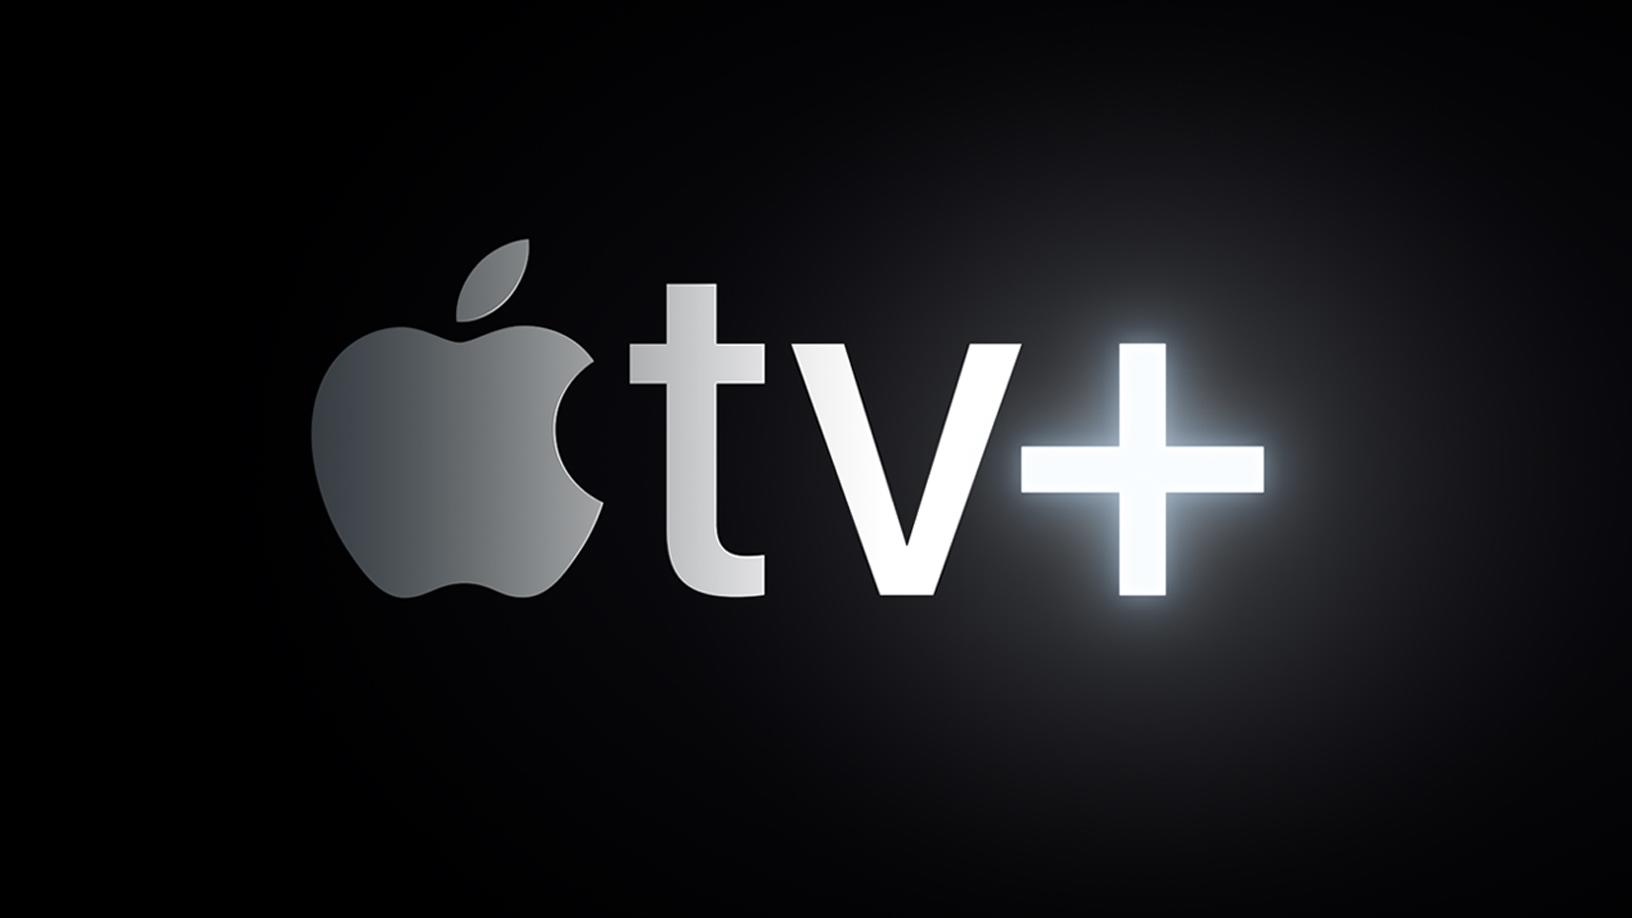 Apple is extending Apple TV+ trials again